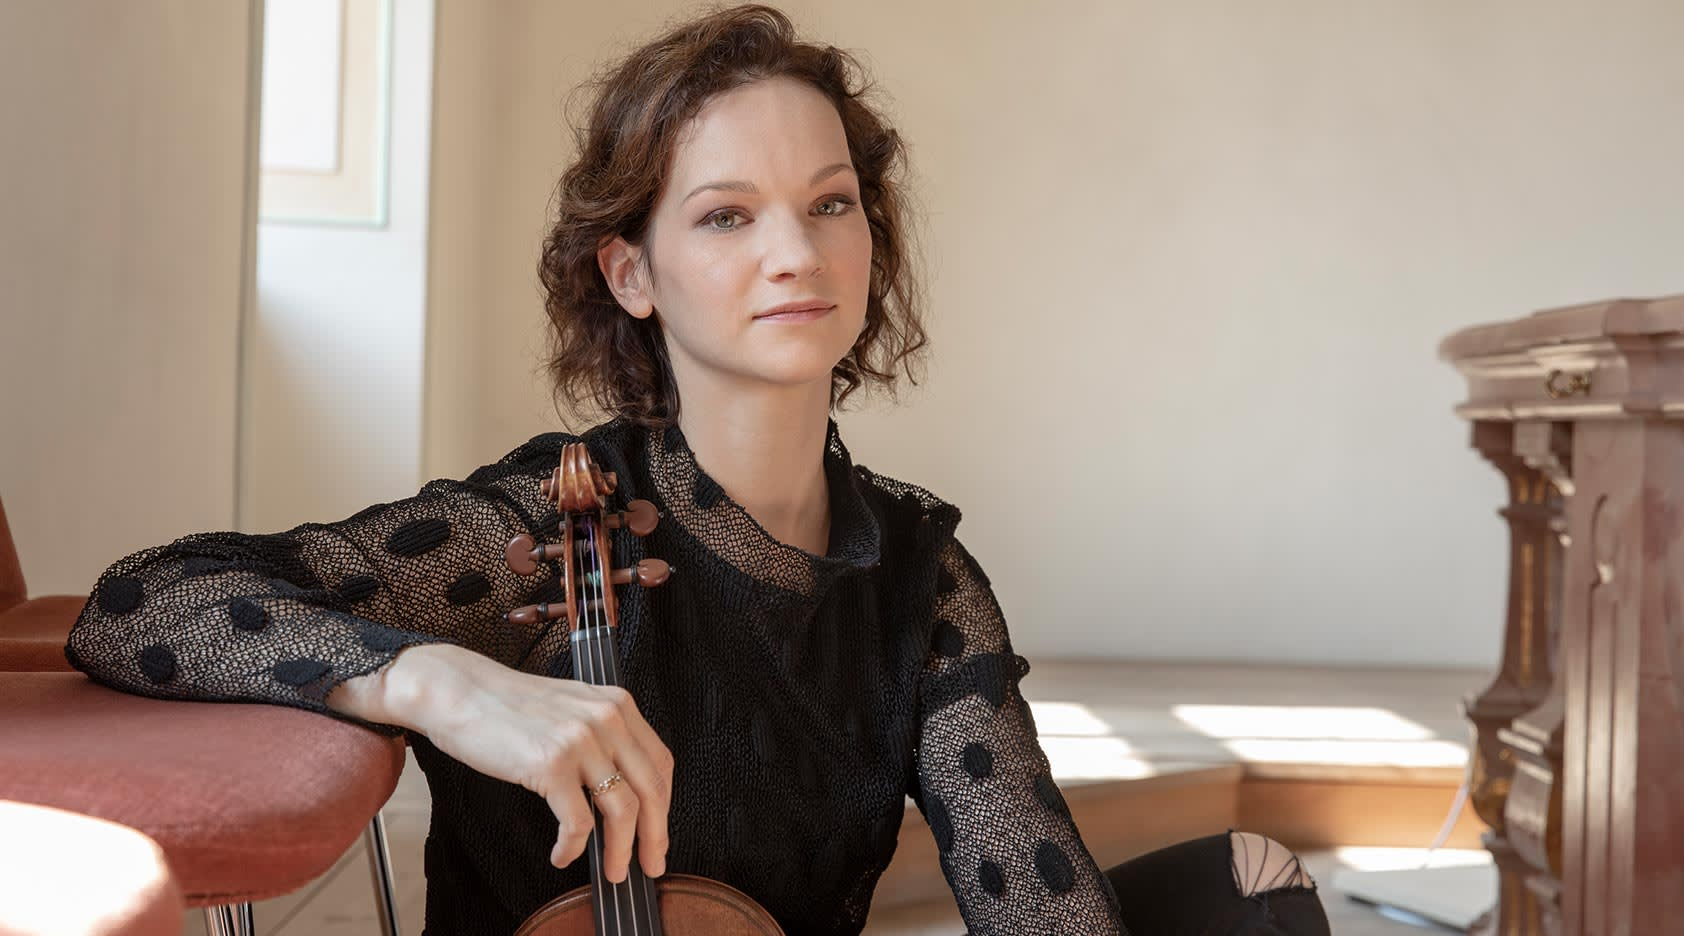 CANCELLED: Hilary Hahn and Beethoven's <em>Pastoral</em> Symphony